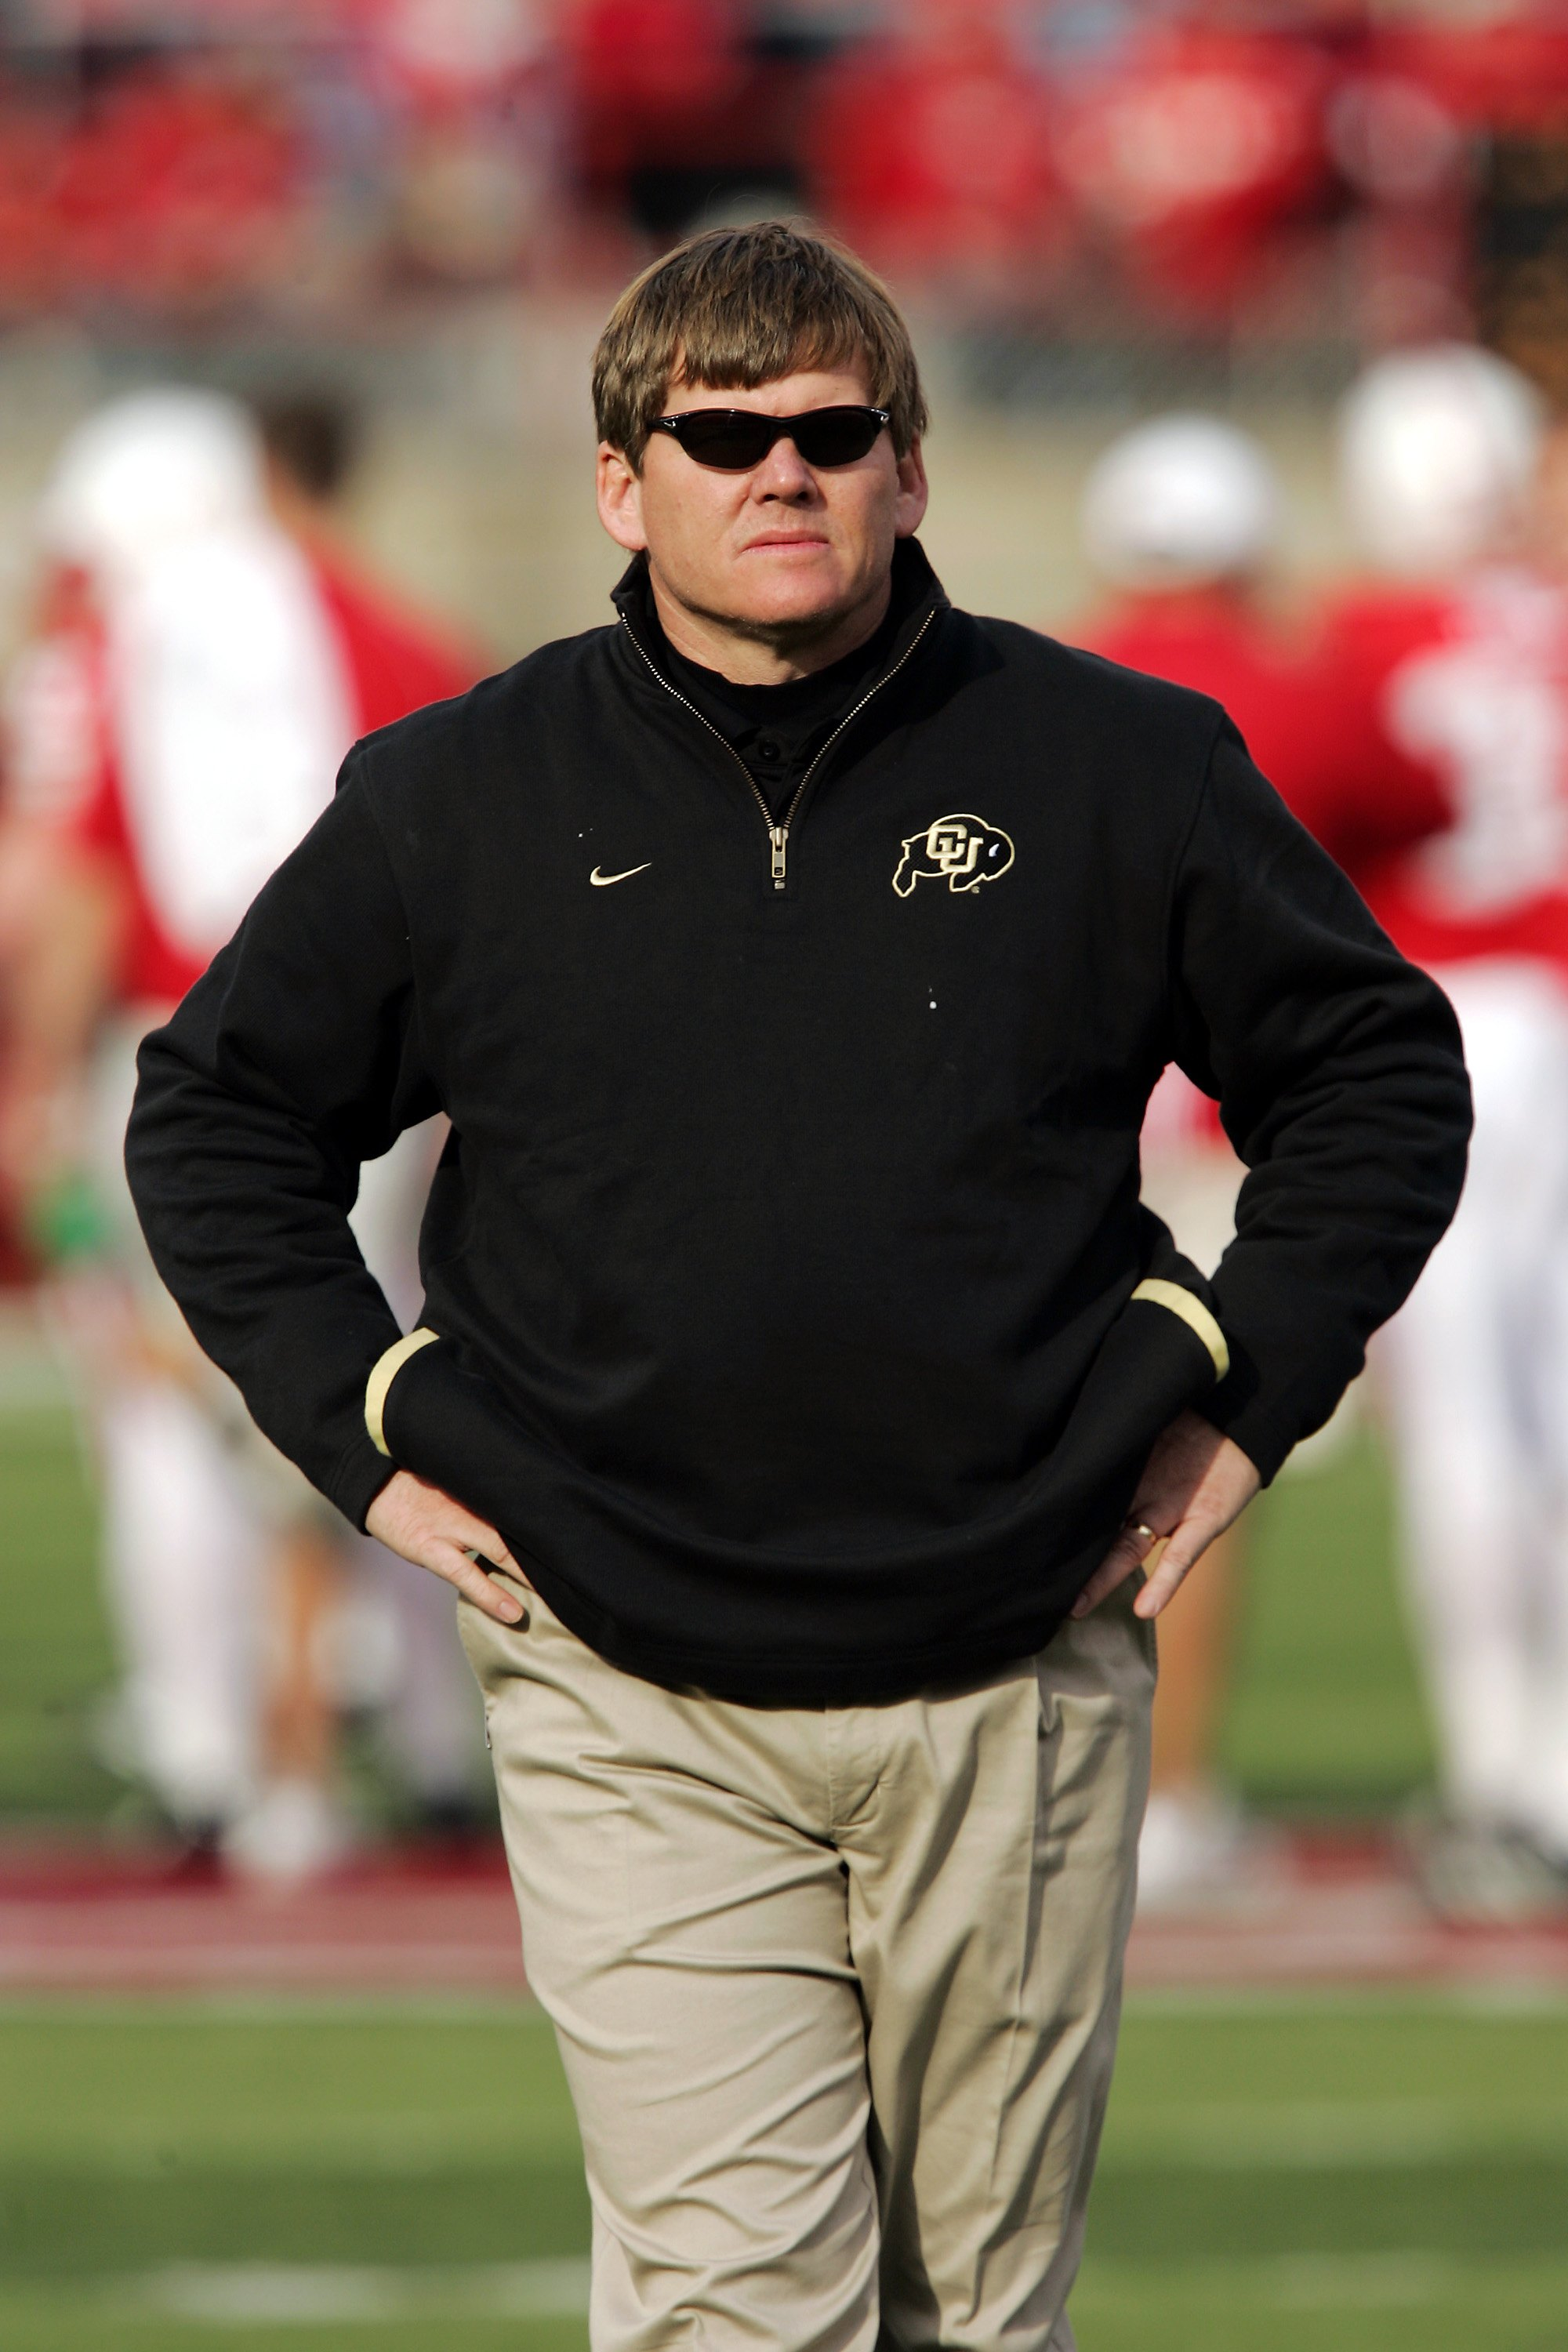 LINCOLN, NE - NOVEMBER 24:  Head coach Dan Hawkins of the Colorado Buffaloes watches his team warm up before a game against the Nebraska Cornhuskers on November 24, 2006 at Memorial Stadium in Lincoln, Nebraska.  Nebraska won 37-14.  (Photo by Brian Bahr/